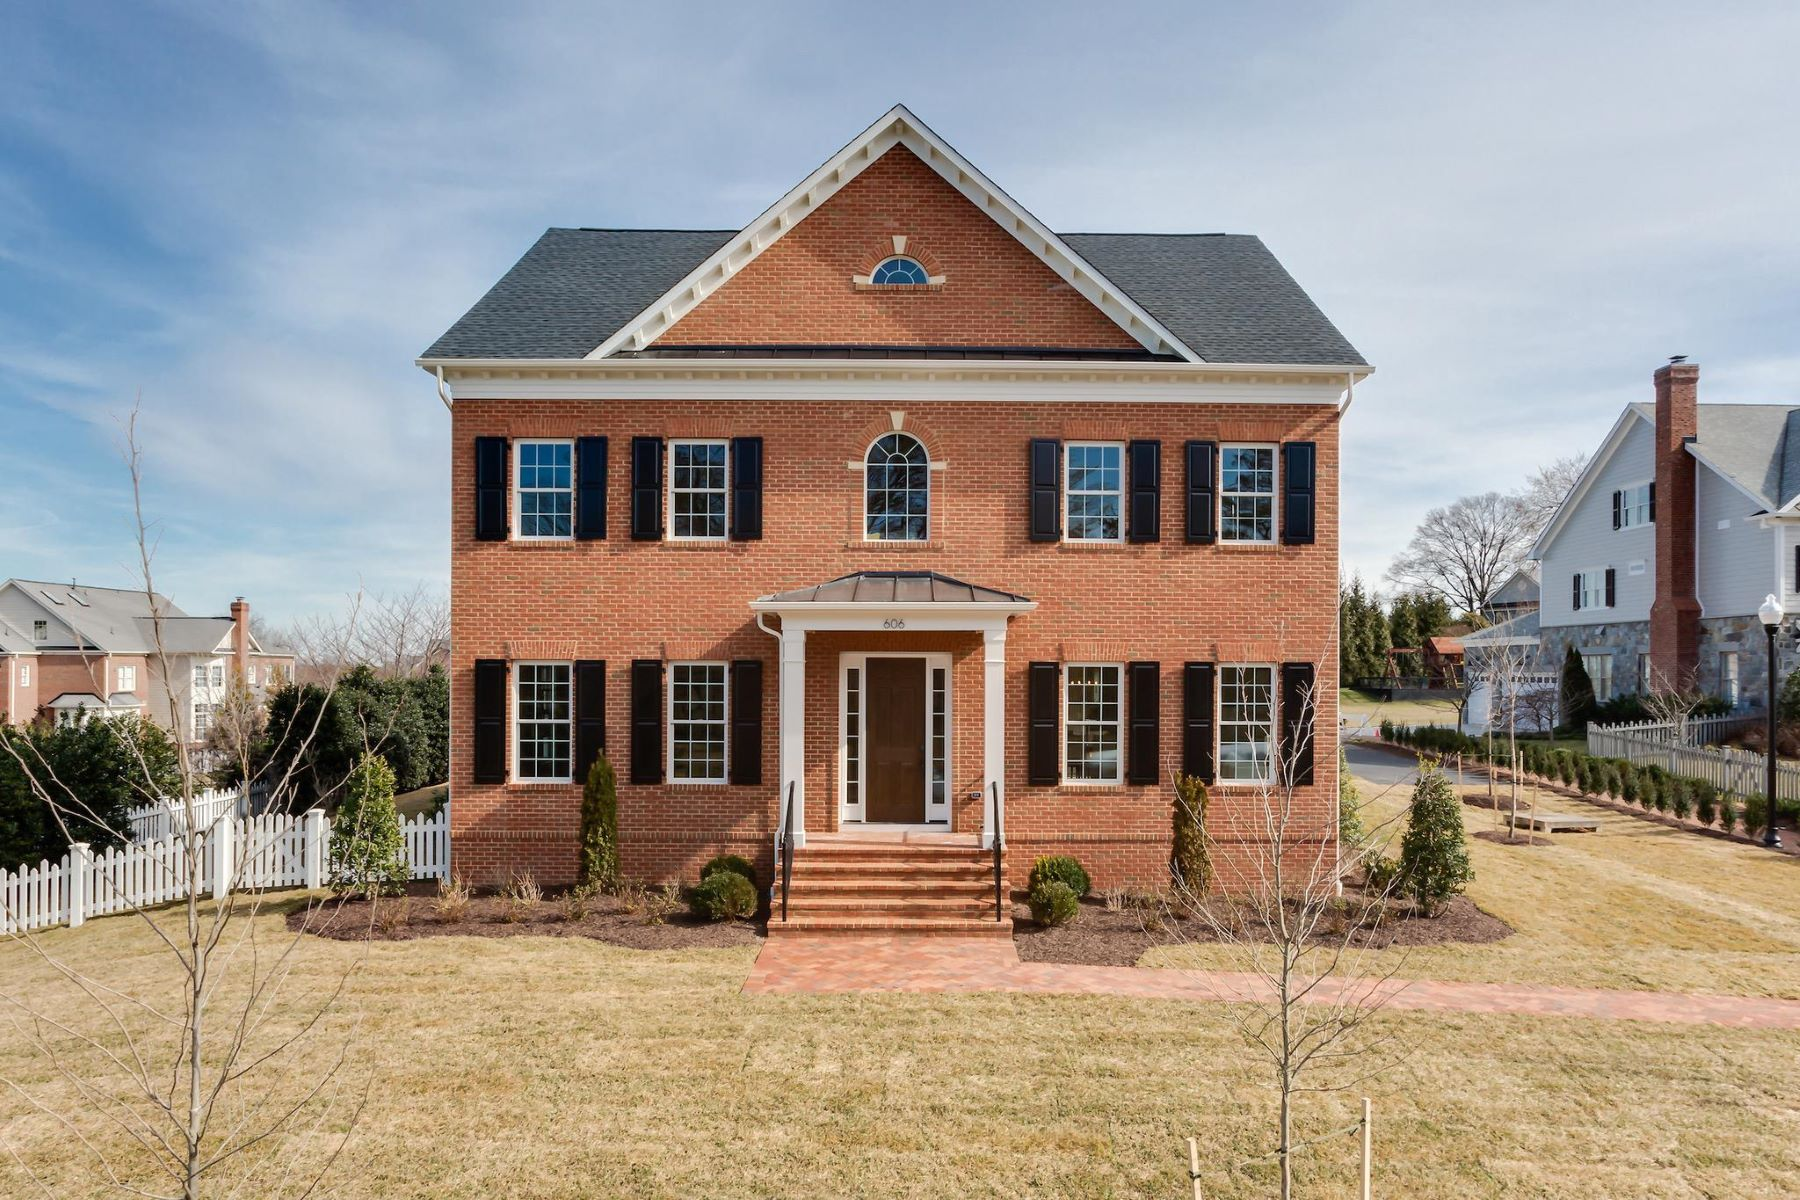 Single Family Home for Sale at 606 President Ford Ln Alexandria, Virginia 22302 United States